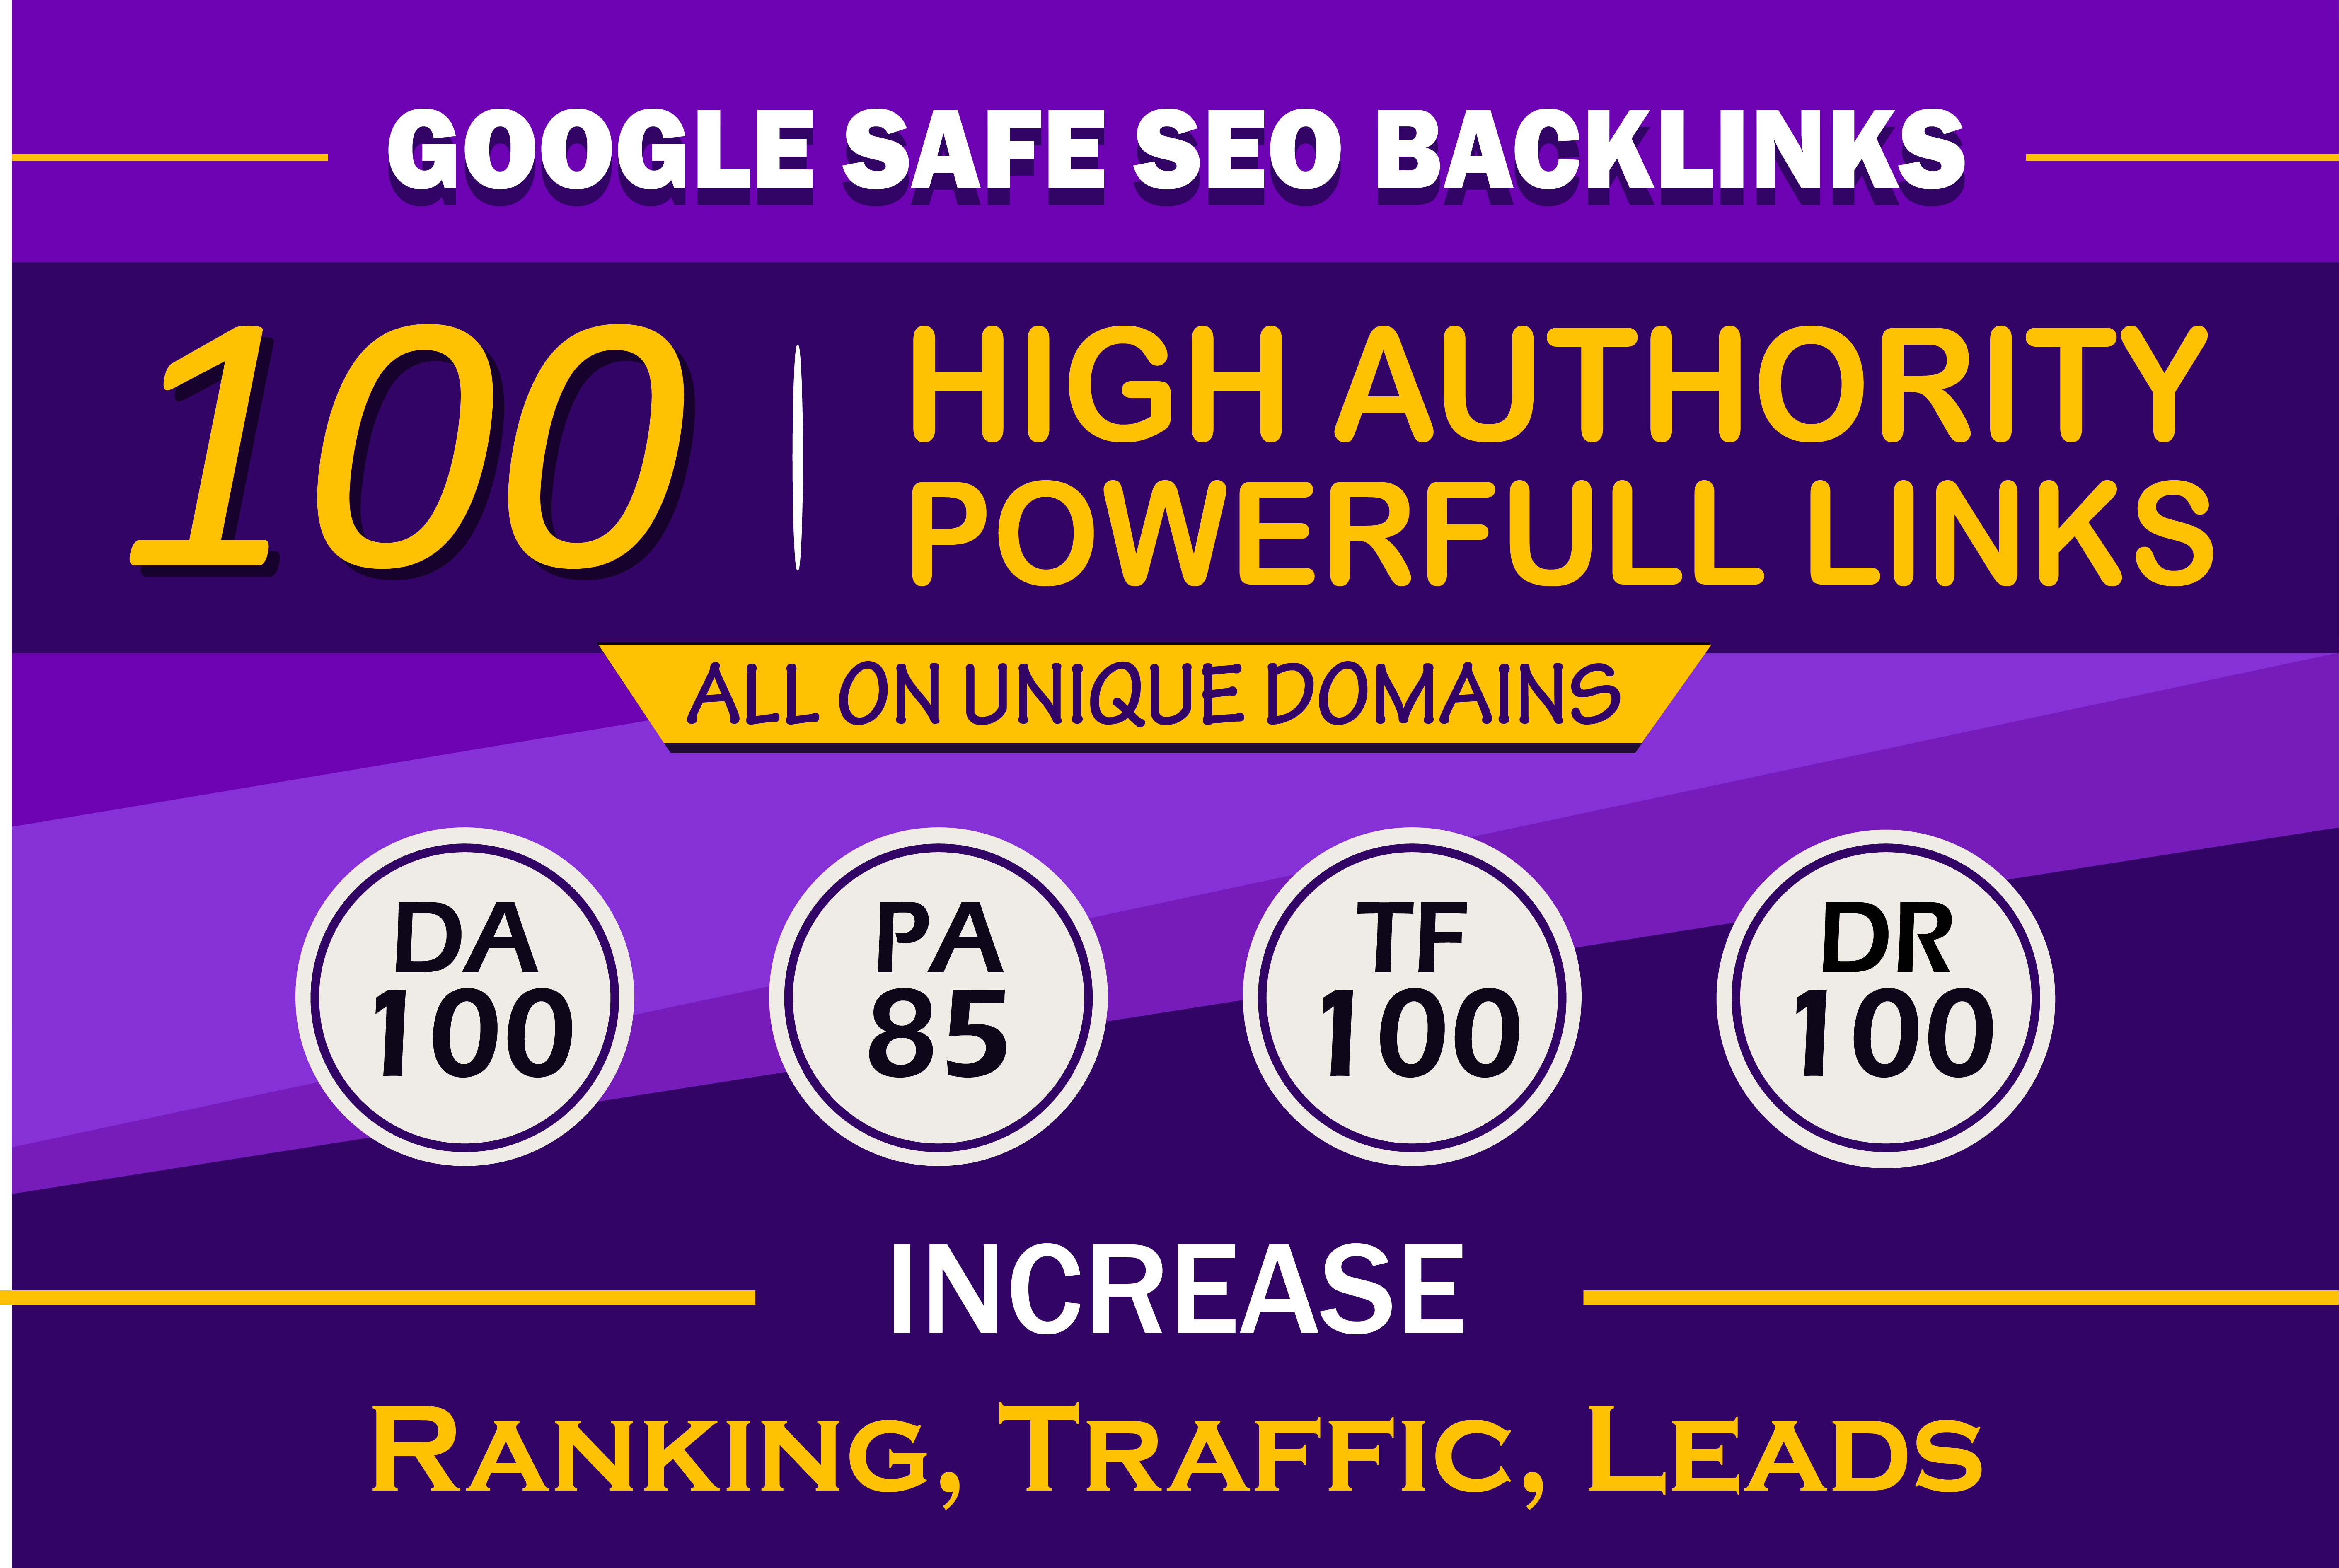 Boost your ranking on Google with 100 High Authority Seo Backlinks